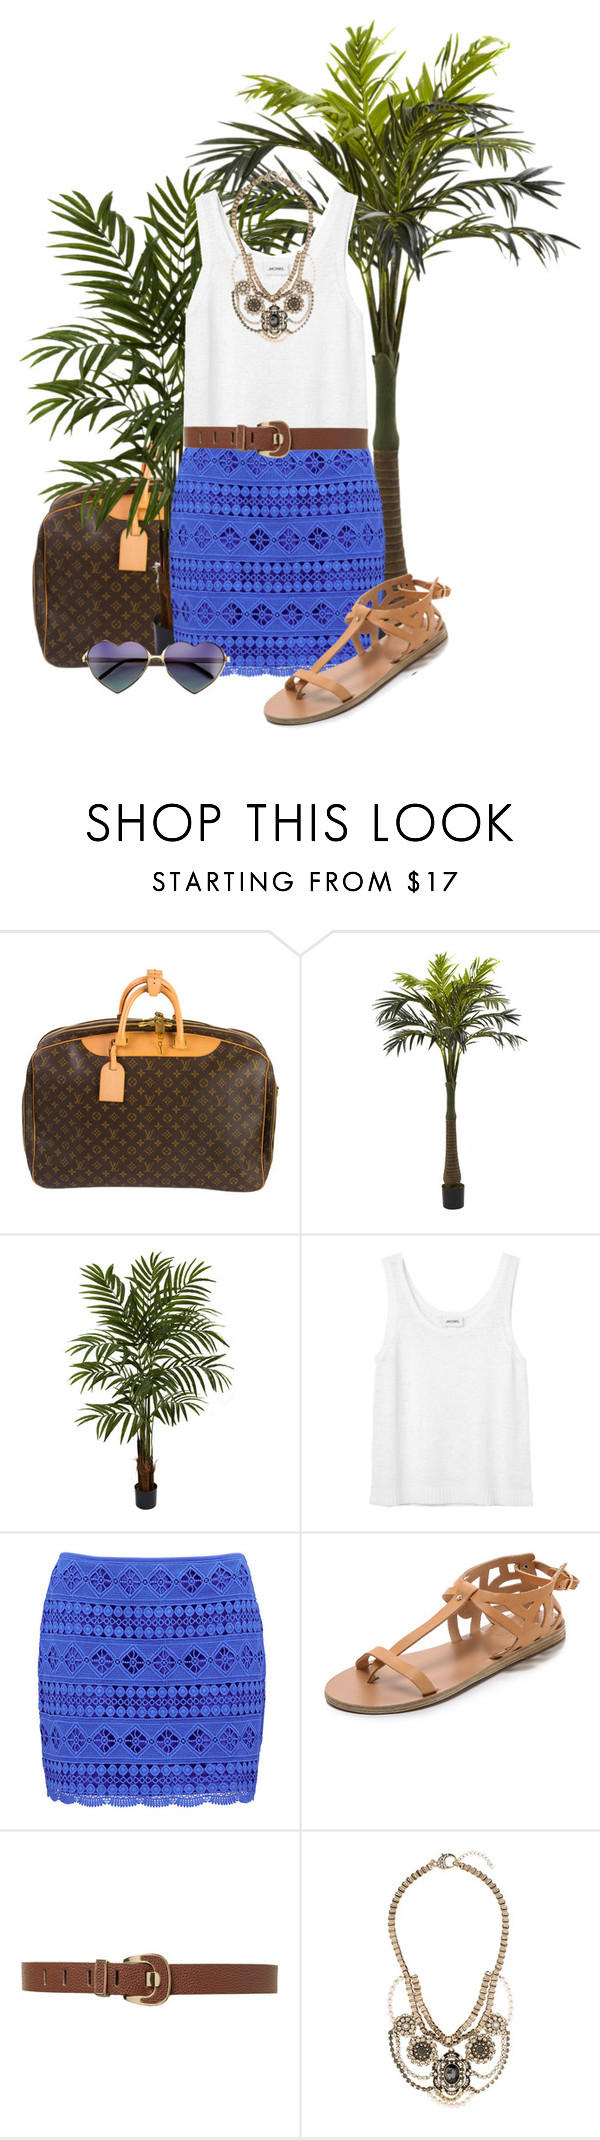 """Tropical Vacation"" by brebrz8 ❤ liked on Polyvore featuring Louis Vuitton, Nearly Natural, Monki, Forever New, Ancient Greek Sandals, Martine Wester, Wildfox, contest and TropicalVacation"